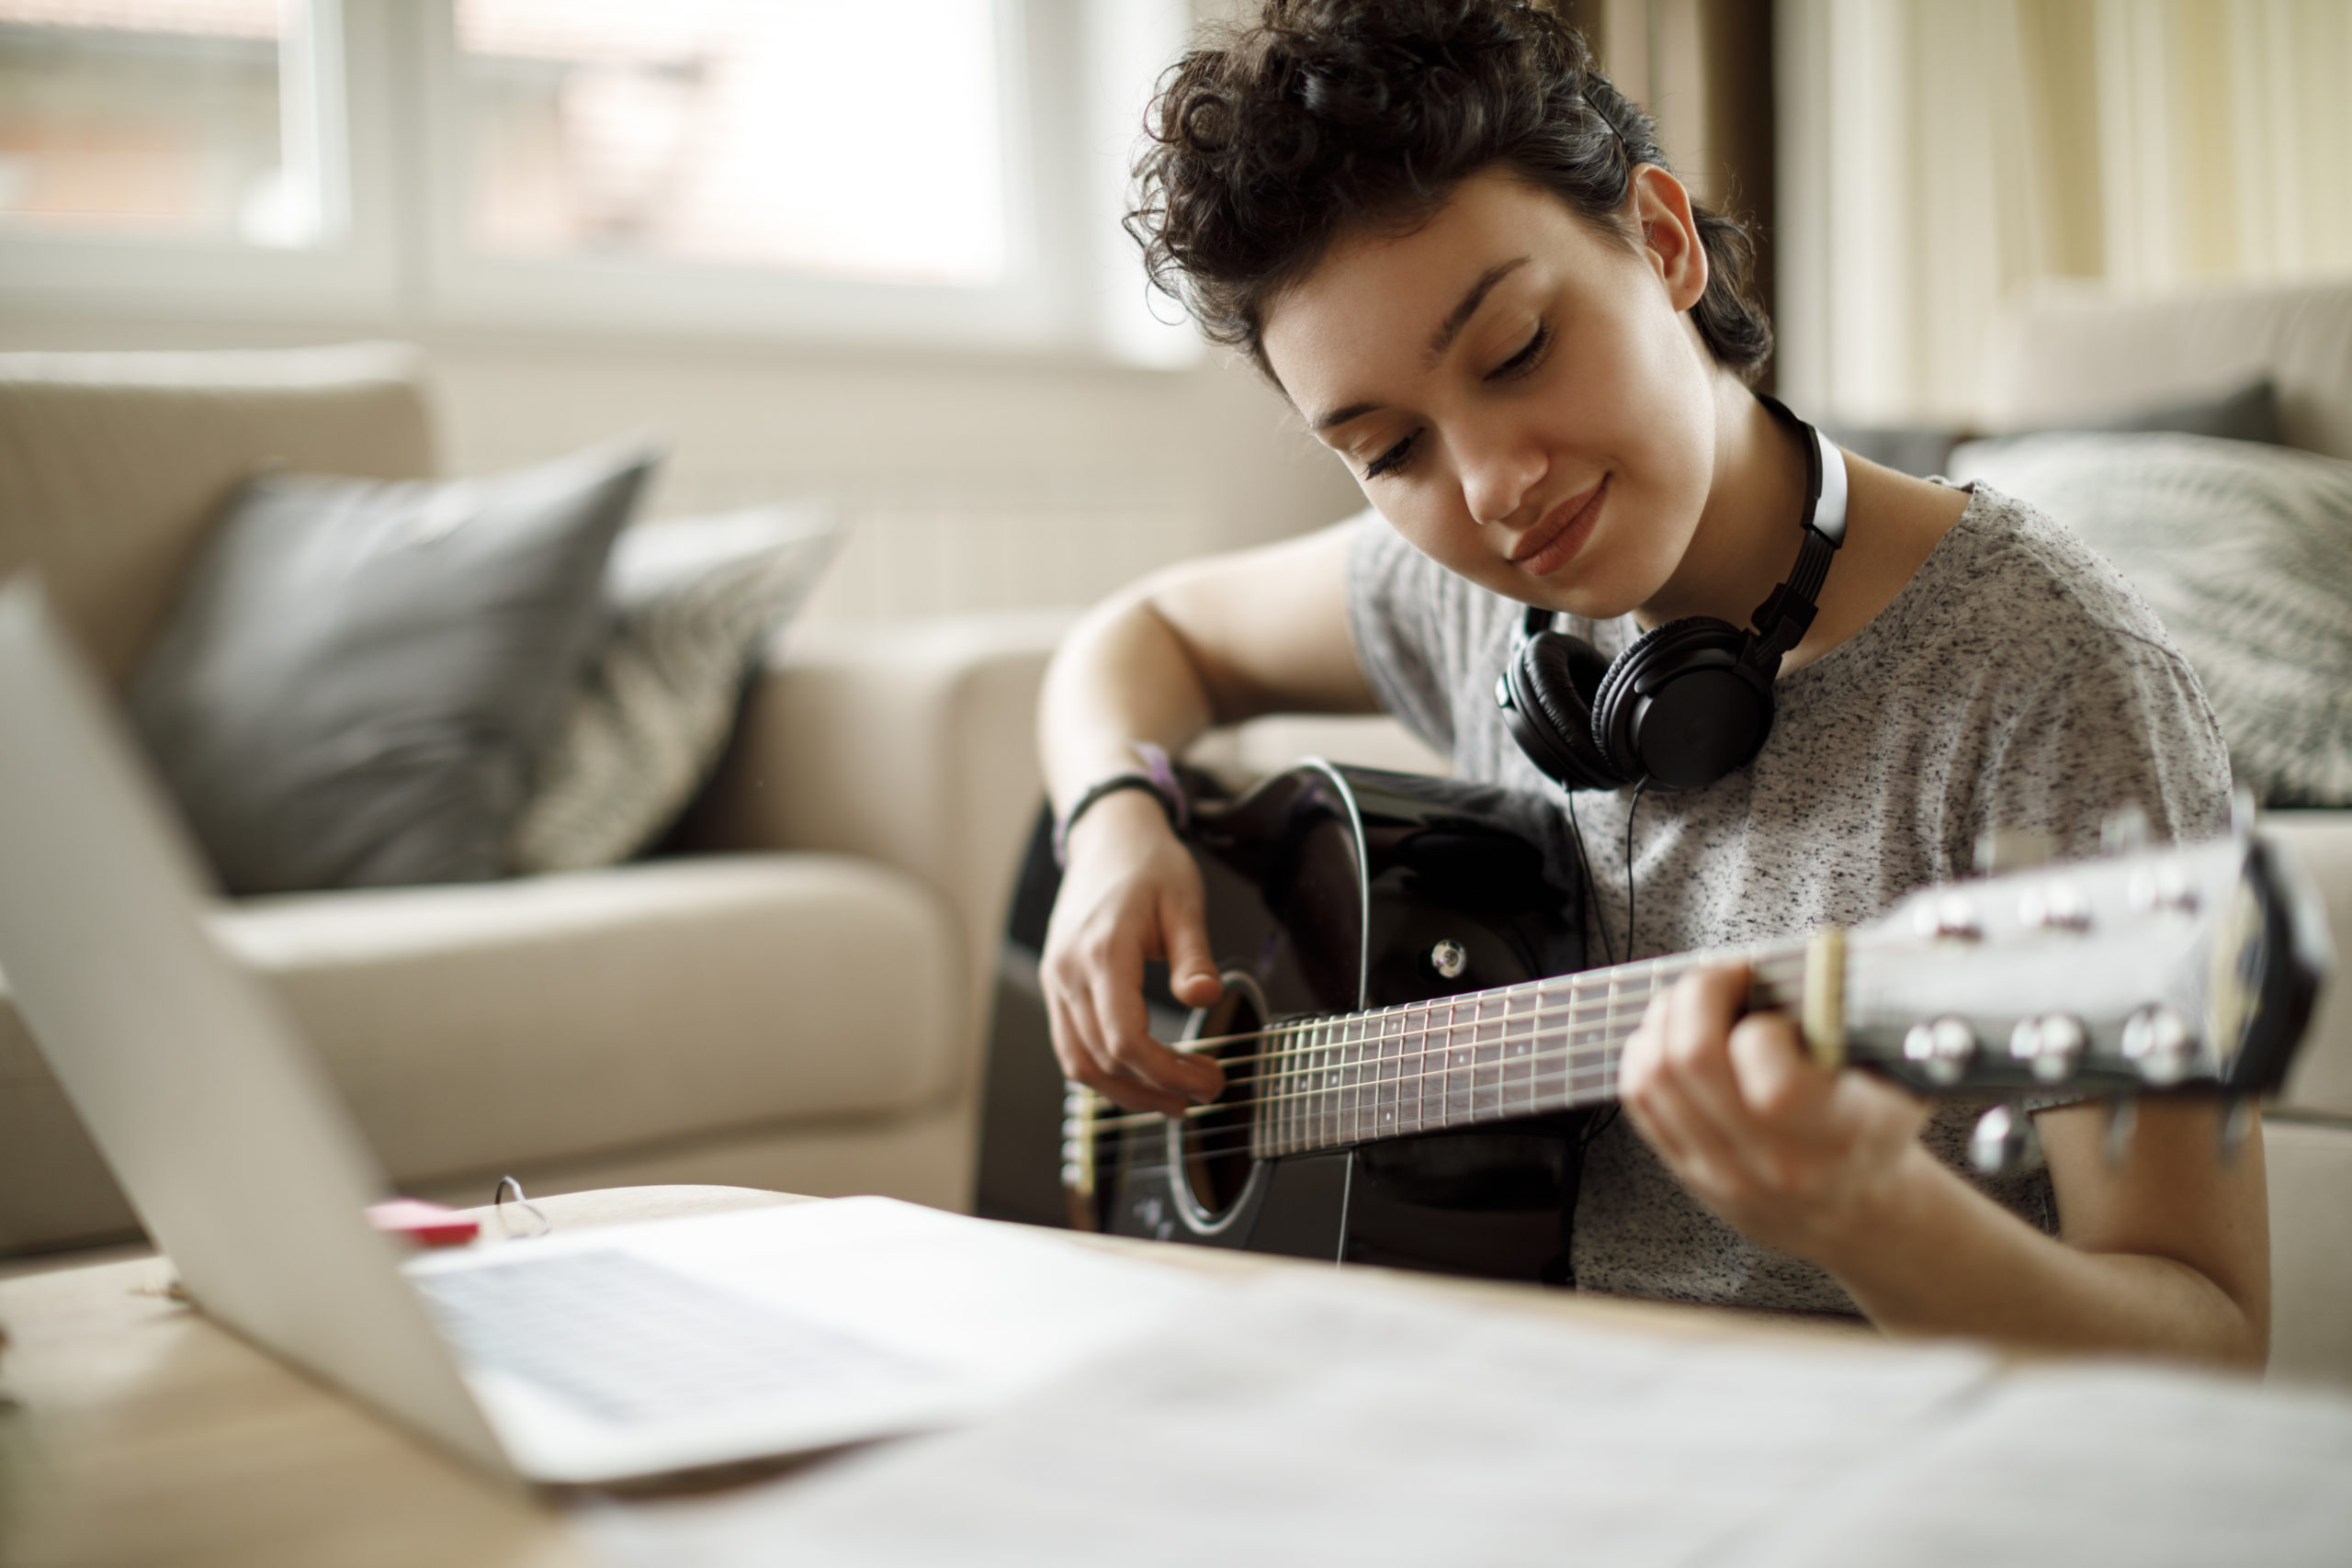 Smiling girl learning guitar from online music lessons